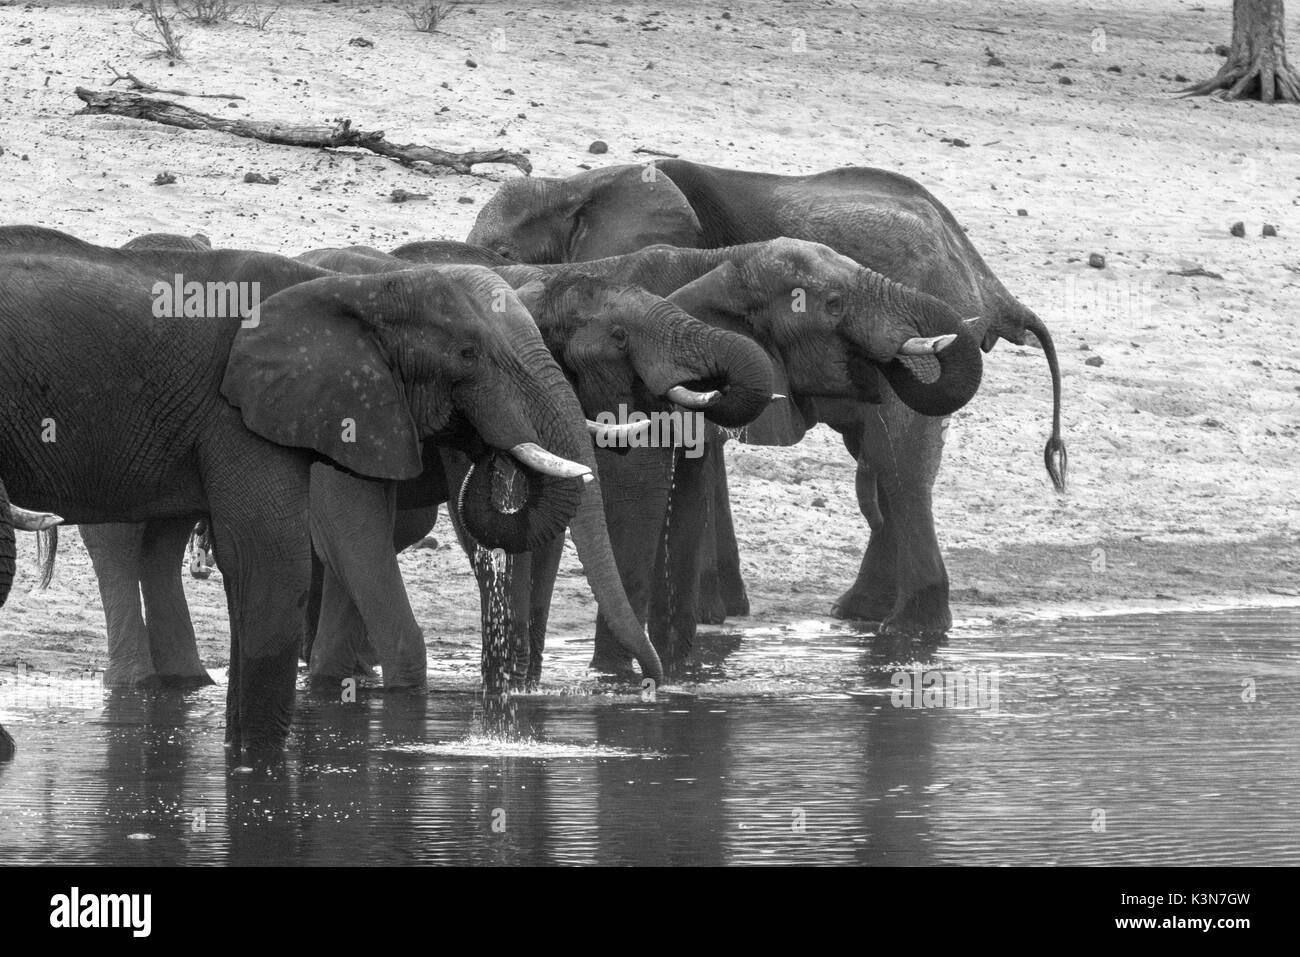 Elephants drinking from Kwando River. Kwando Core Area, Bwabwata National Park, Namibia, Africa. - Stock Image